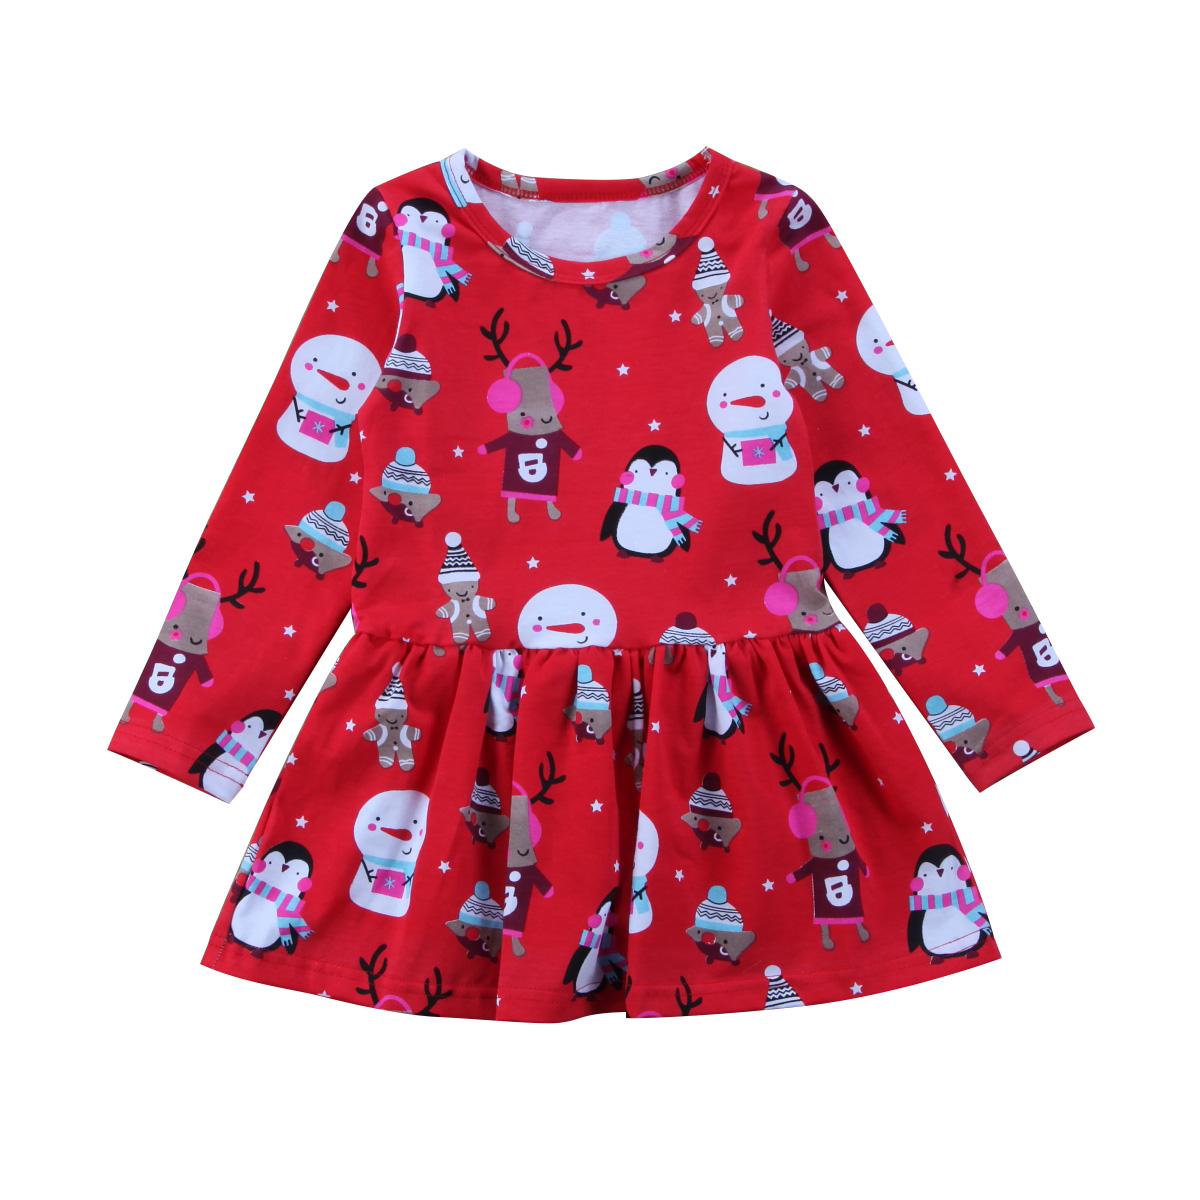 Baby Girls Snowman Christmas Party Princess Dresses Long Sleeve Tulle Tutu Dress For Xmas